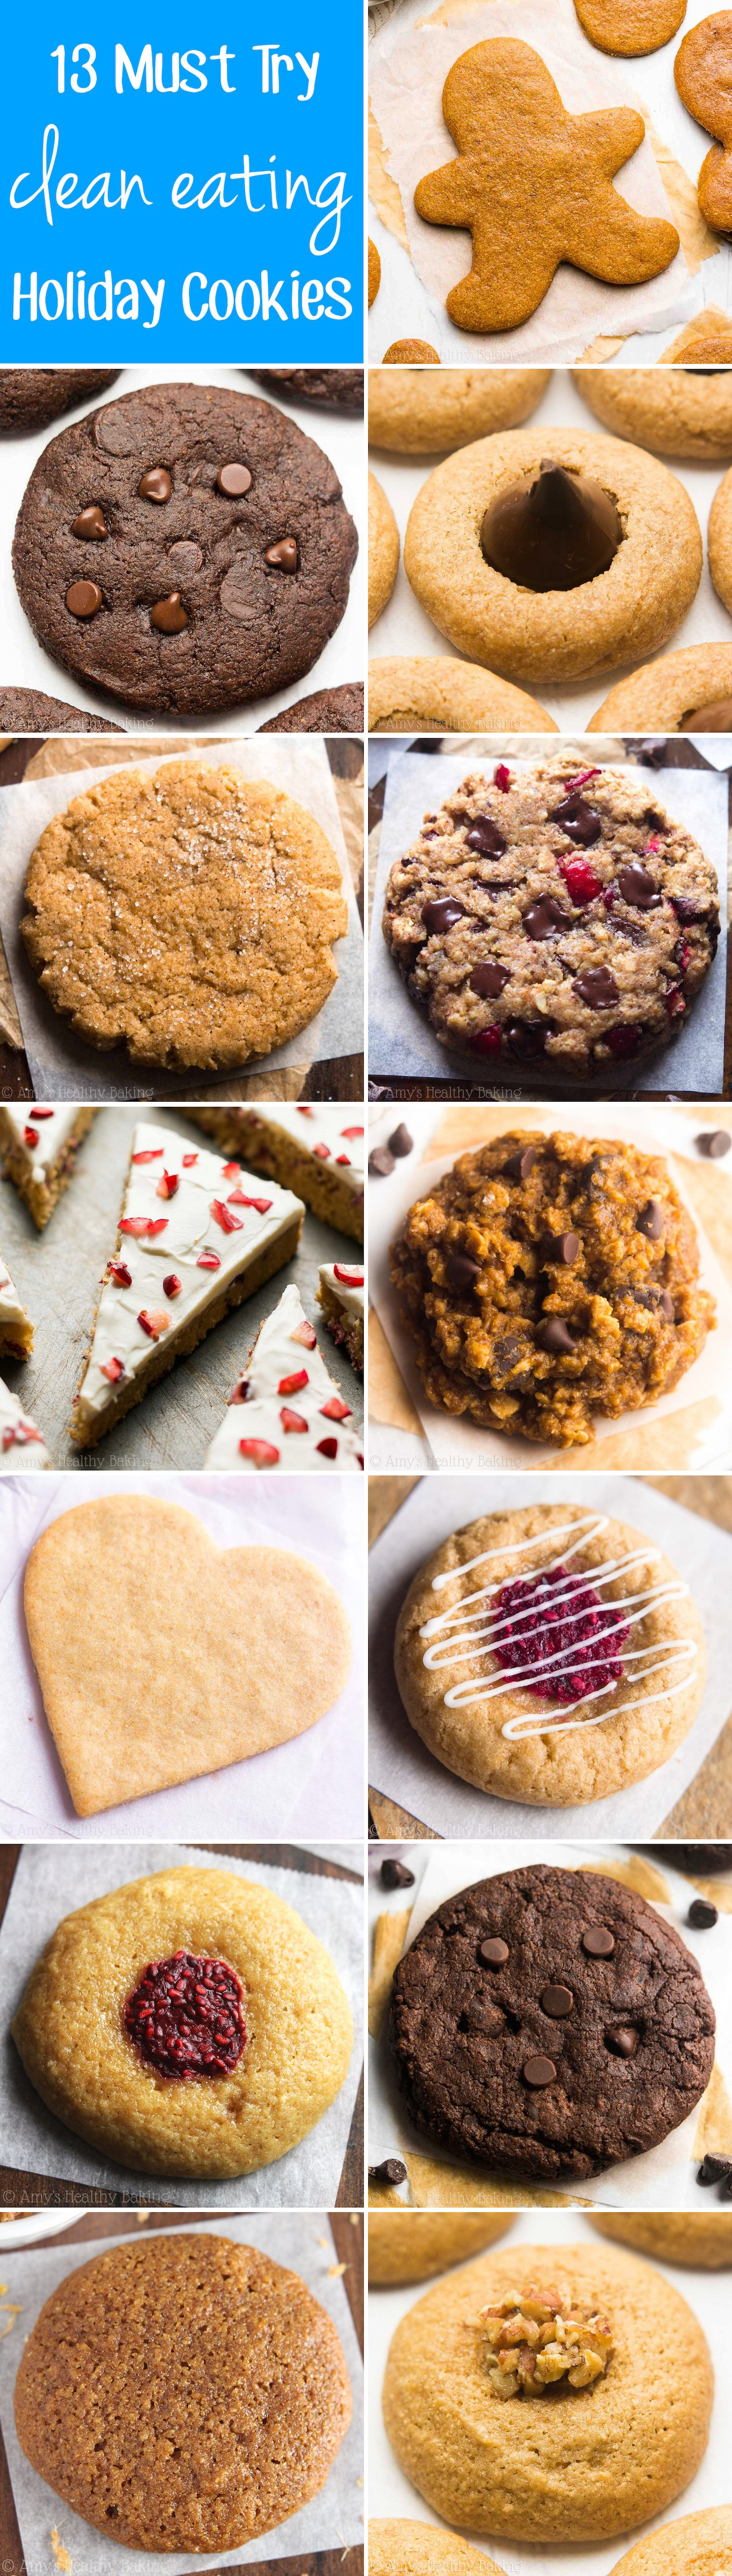 13 Must Try Clean Eating Holiday Cookie Recipes -- so easy & good! They're all made with NO refined flour or sugar! And they don't taste healthy at all!